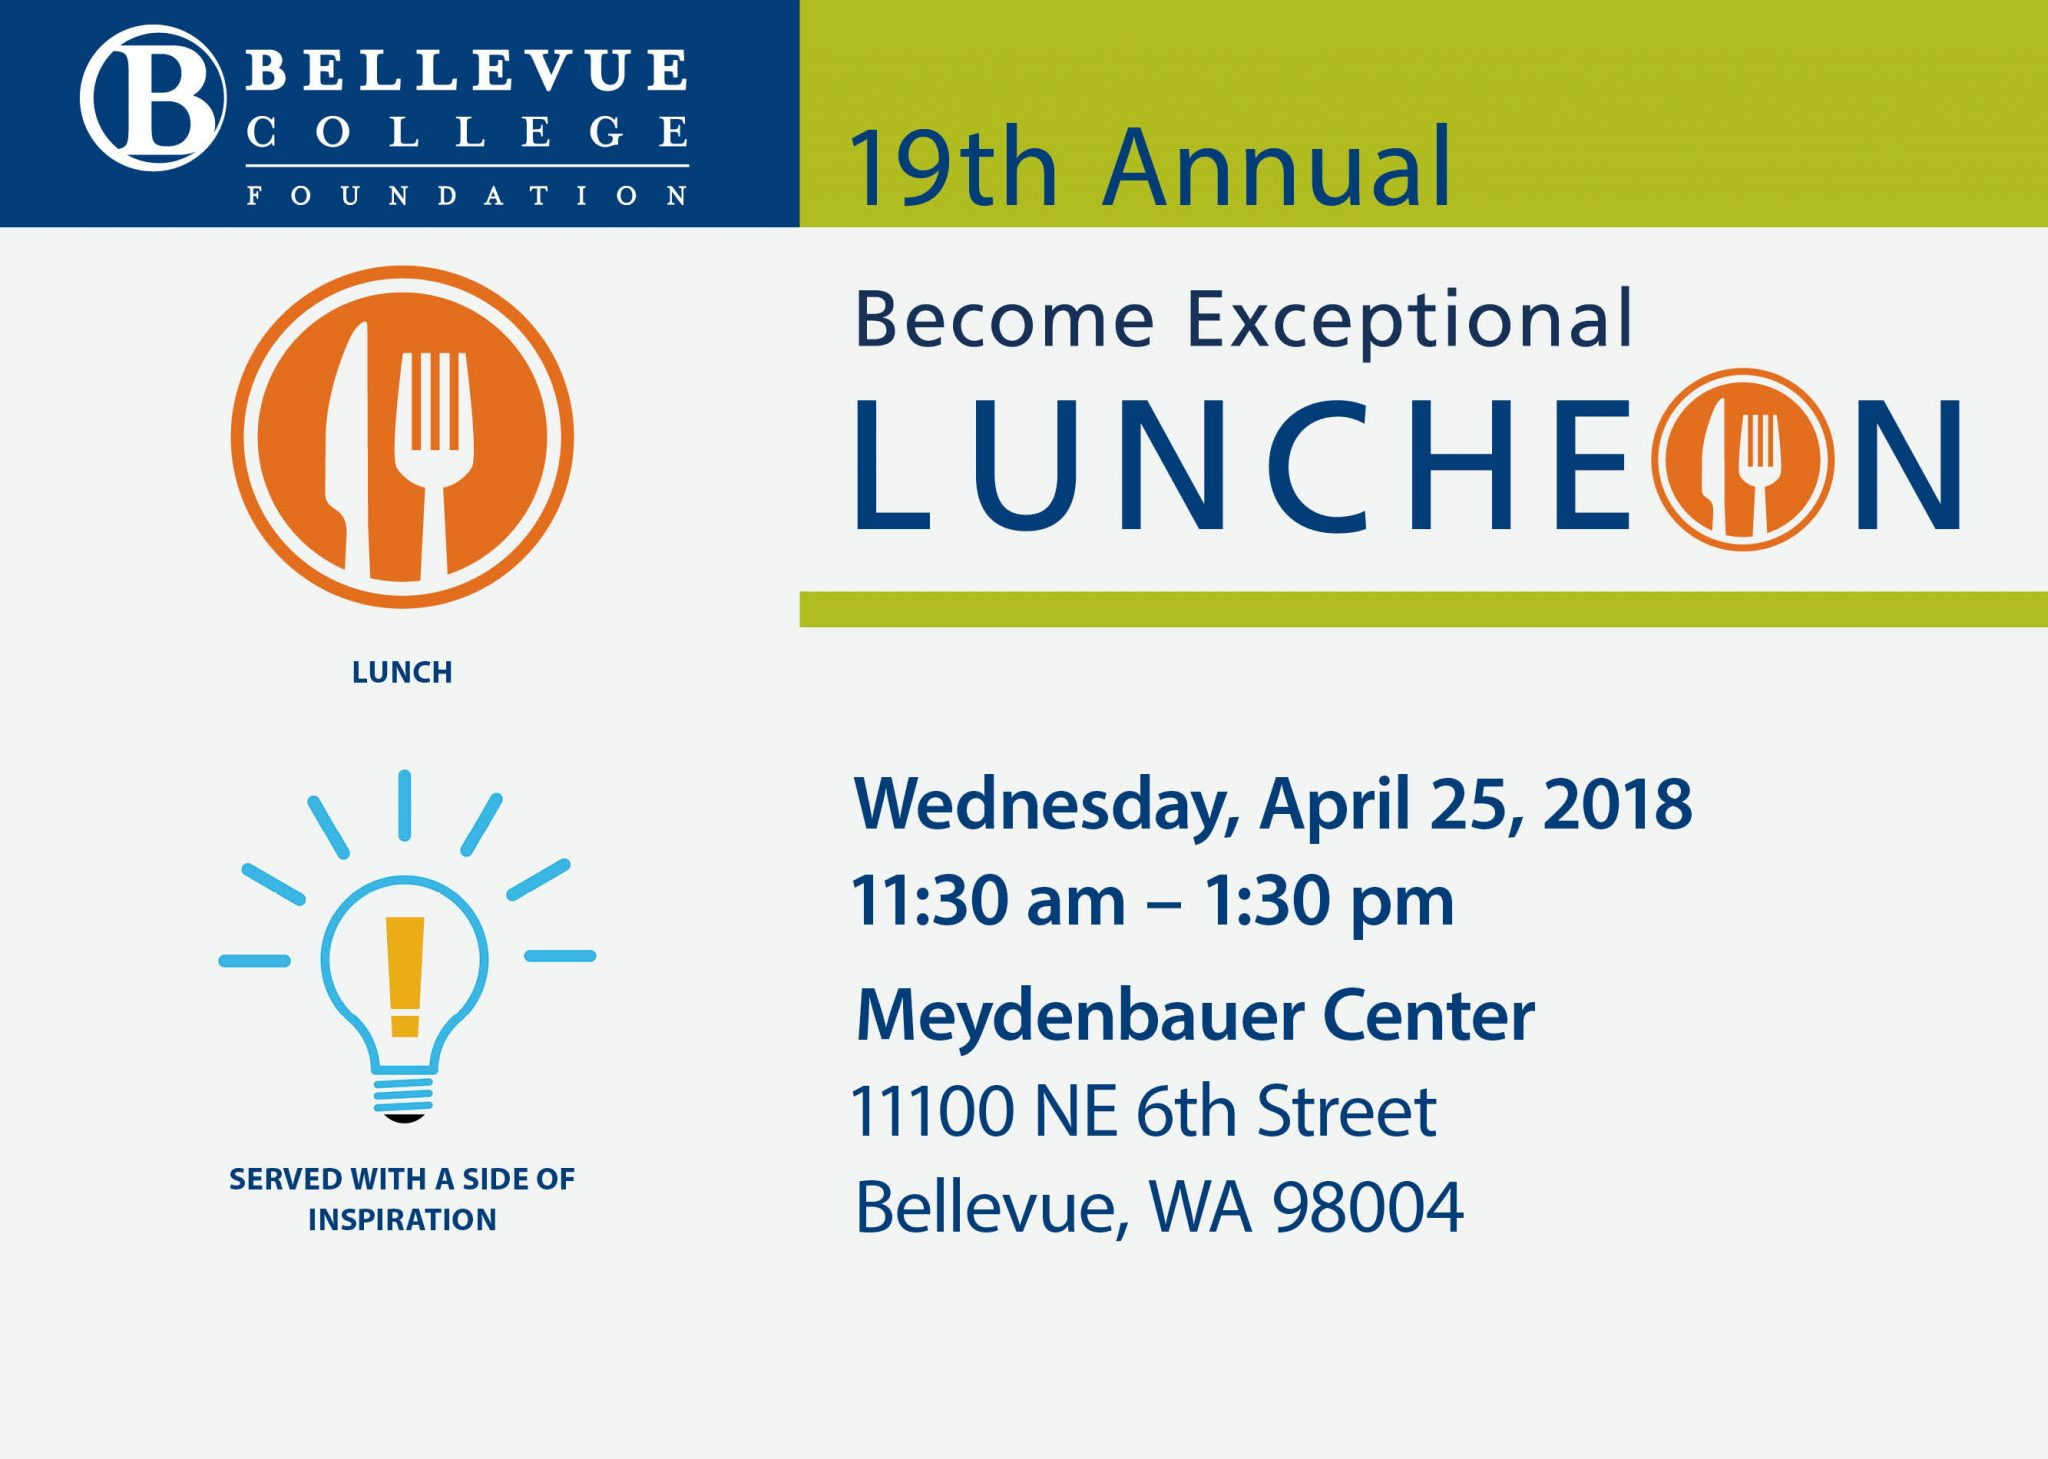 Become Exceptional Luncheon on April 25